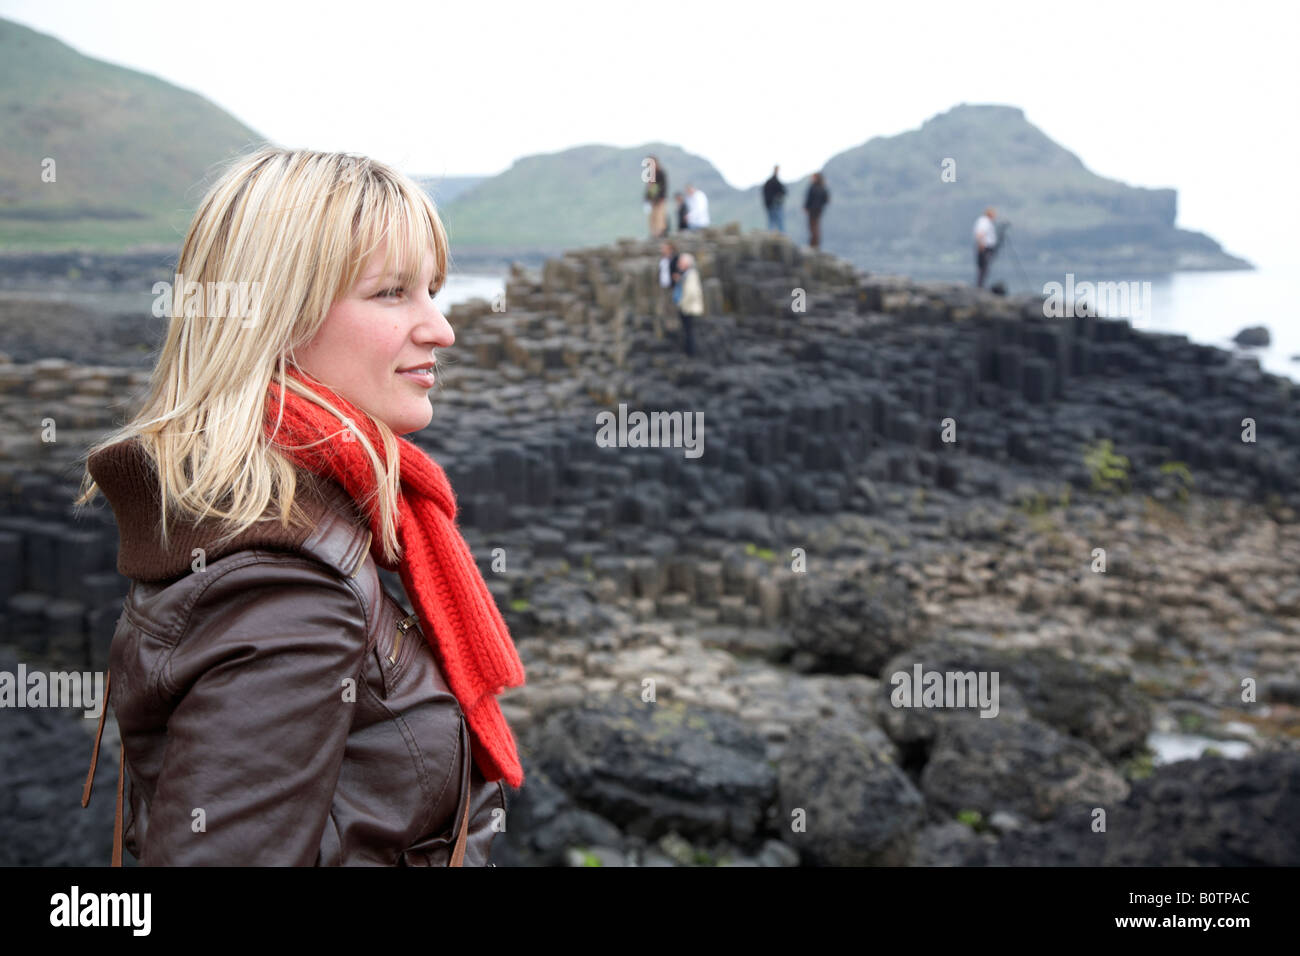 blonde north american female caucasian tourist wearing jeans red scarf and leather jacket standing on overcast day - Stock Image